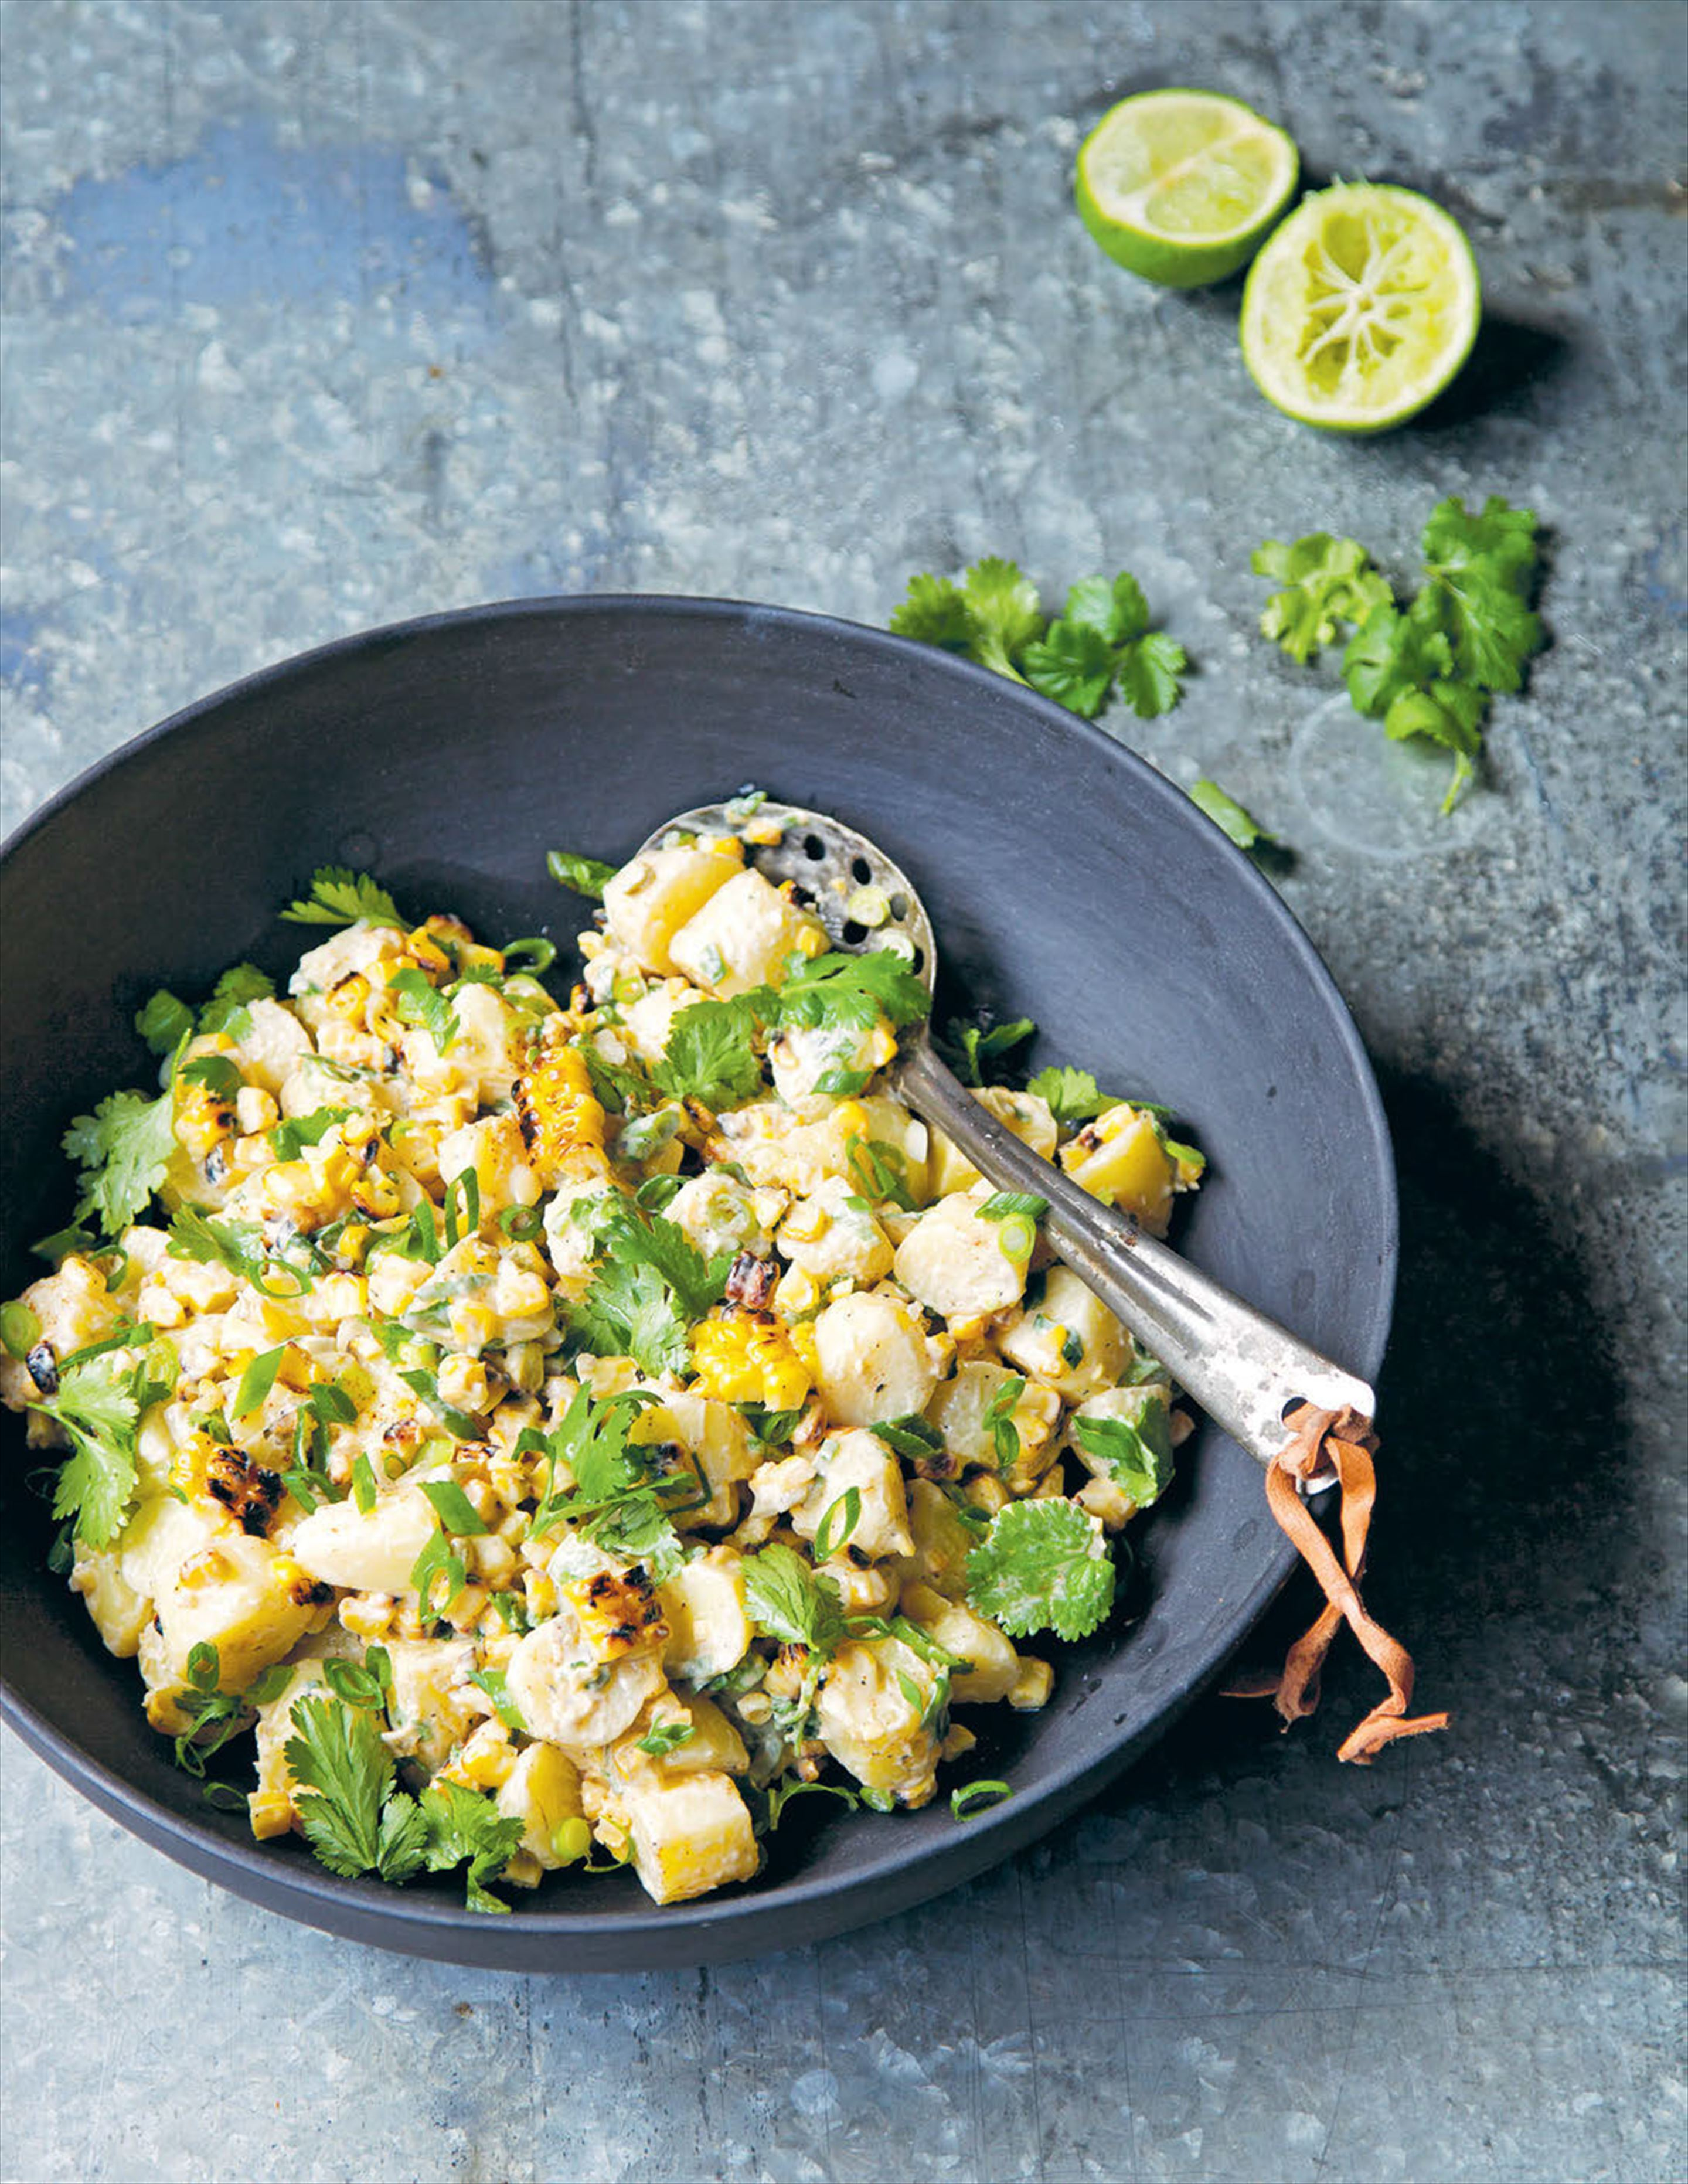 Fossie's charred corn and potato salad